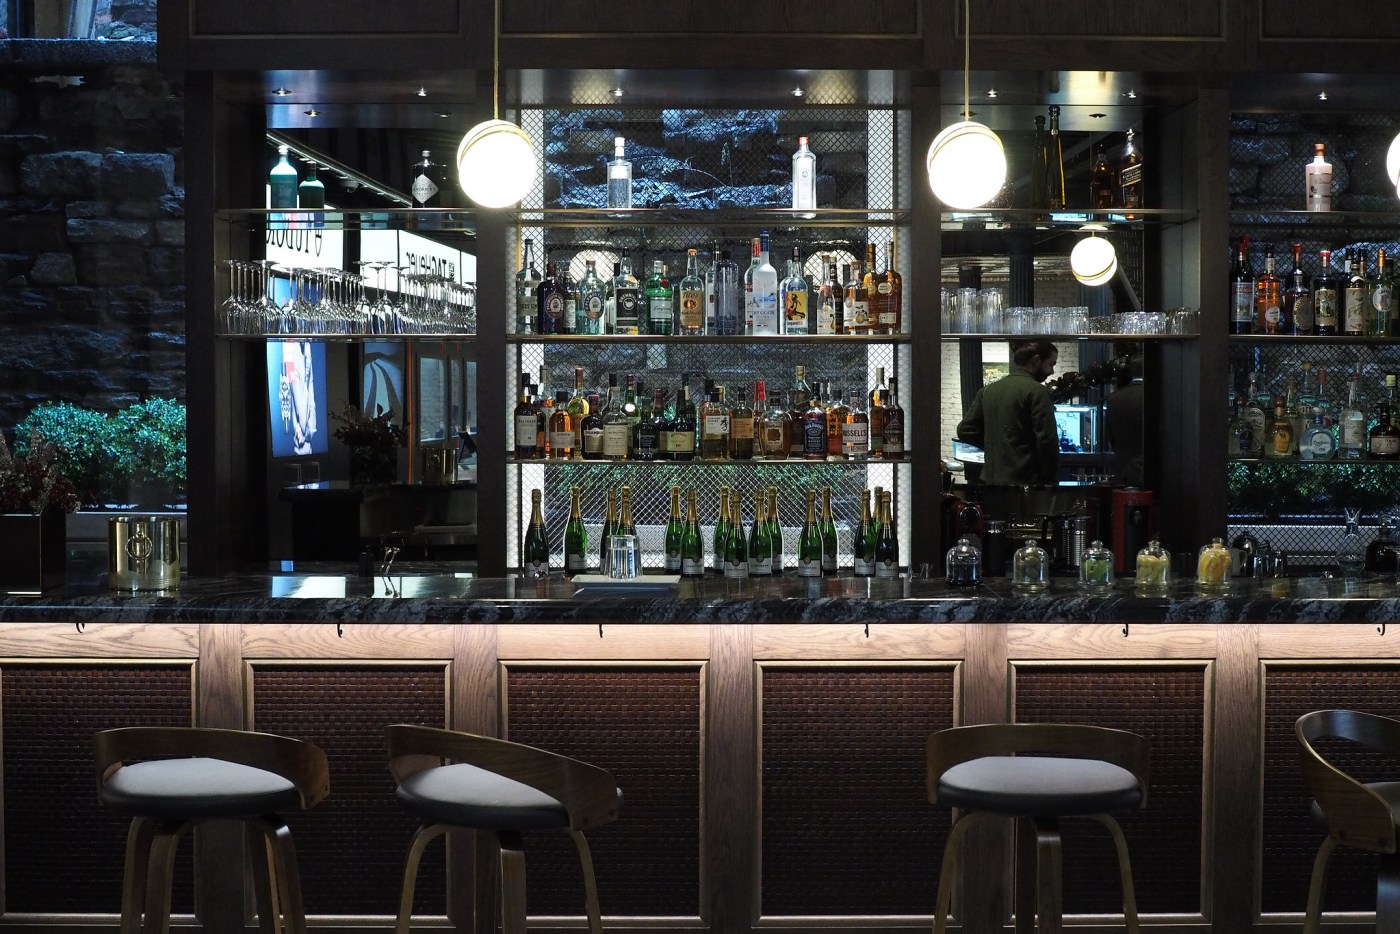 The amazing fully stocked bar that is run by Death & Co